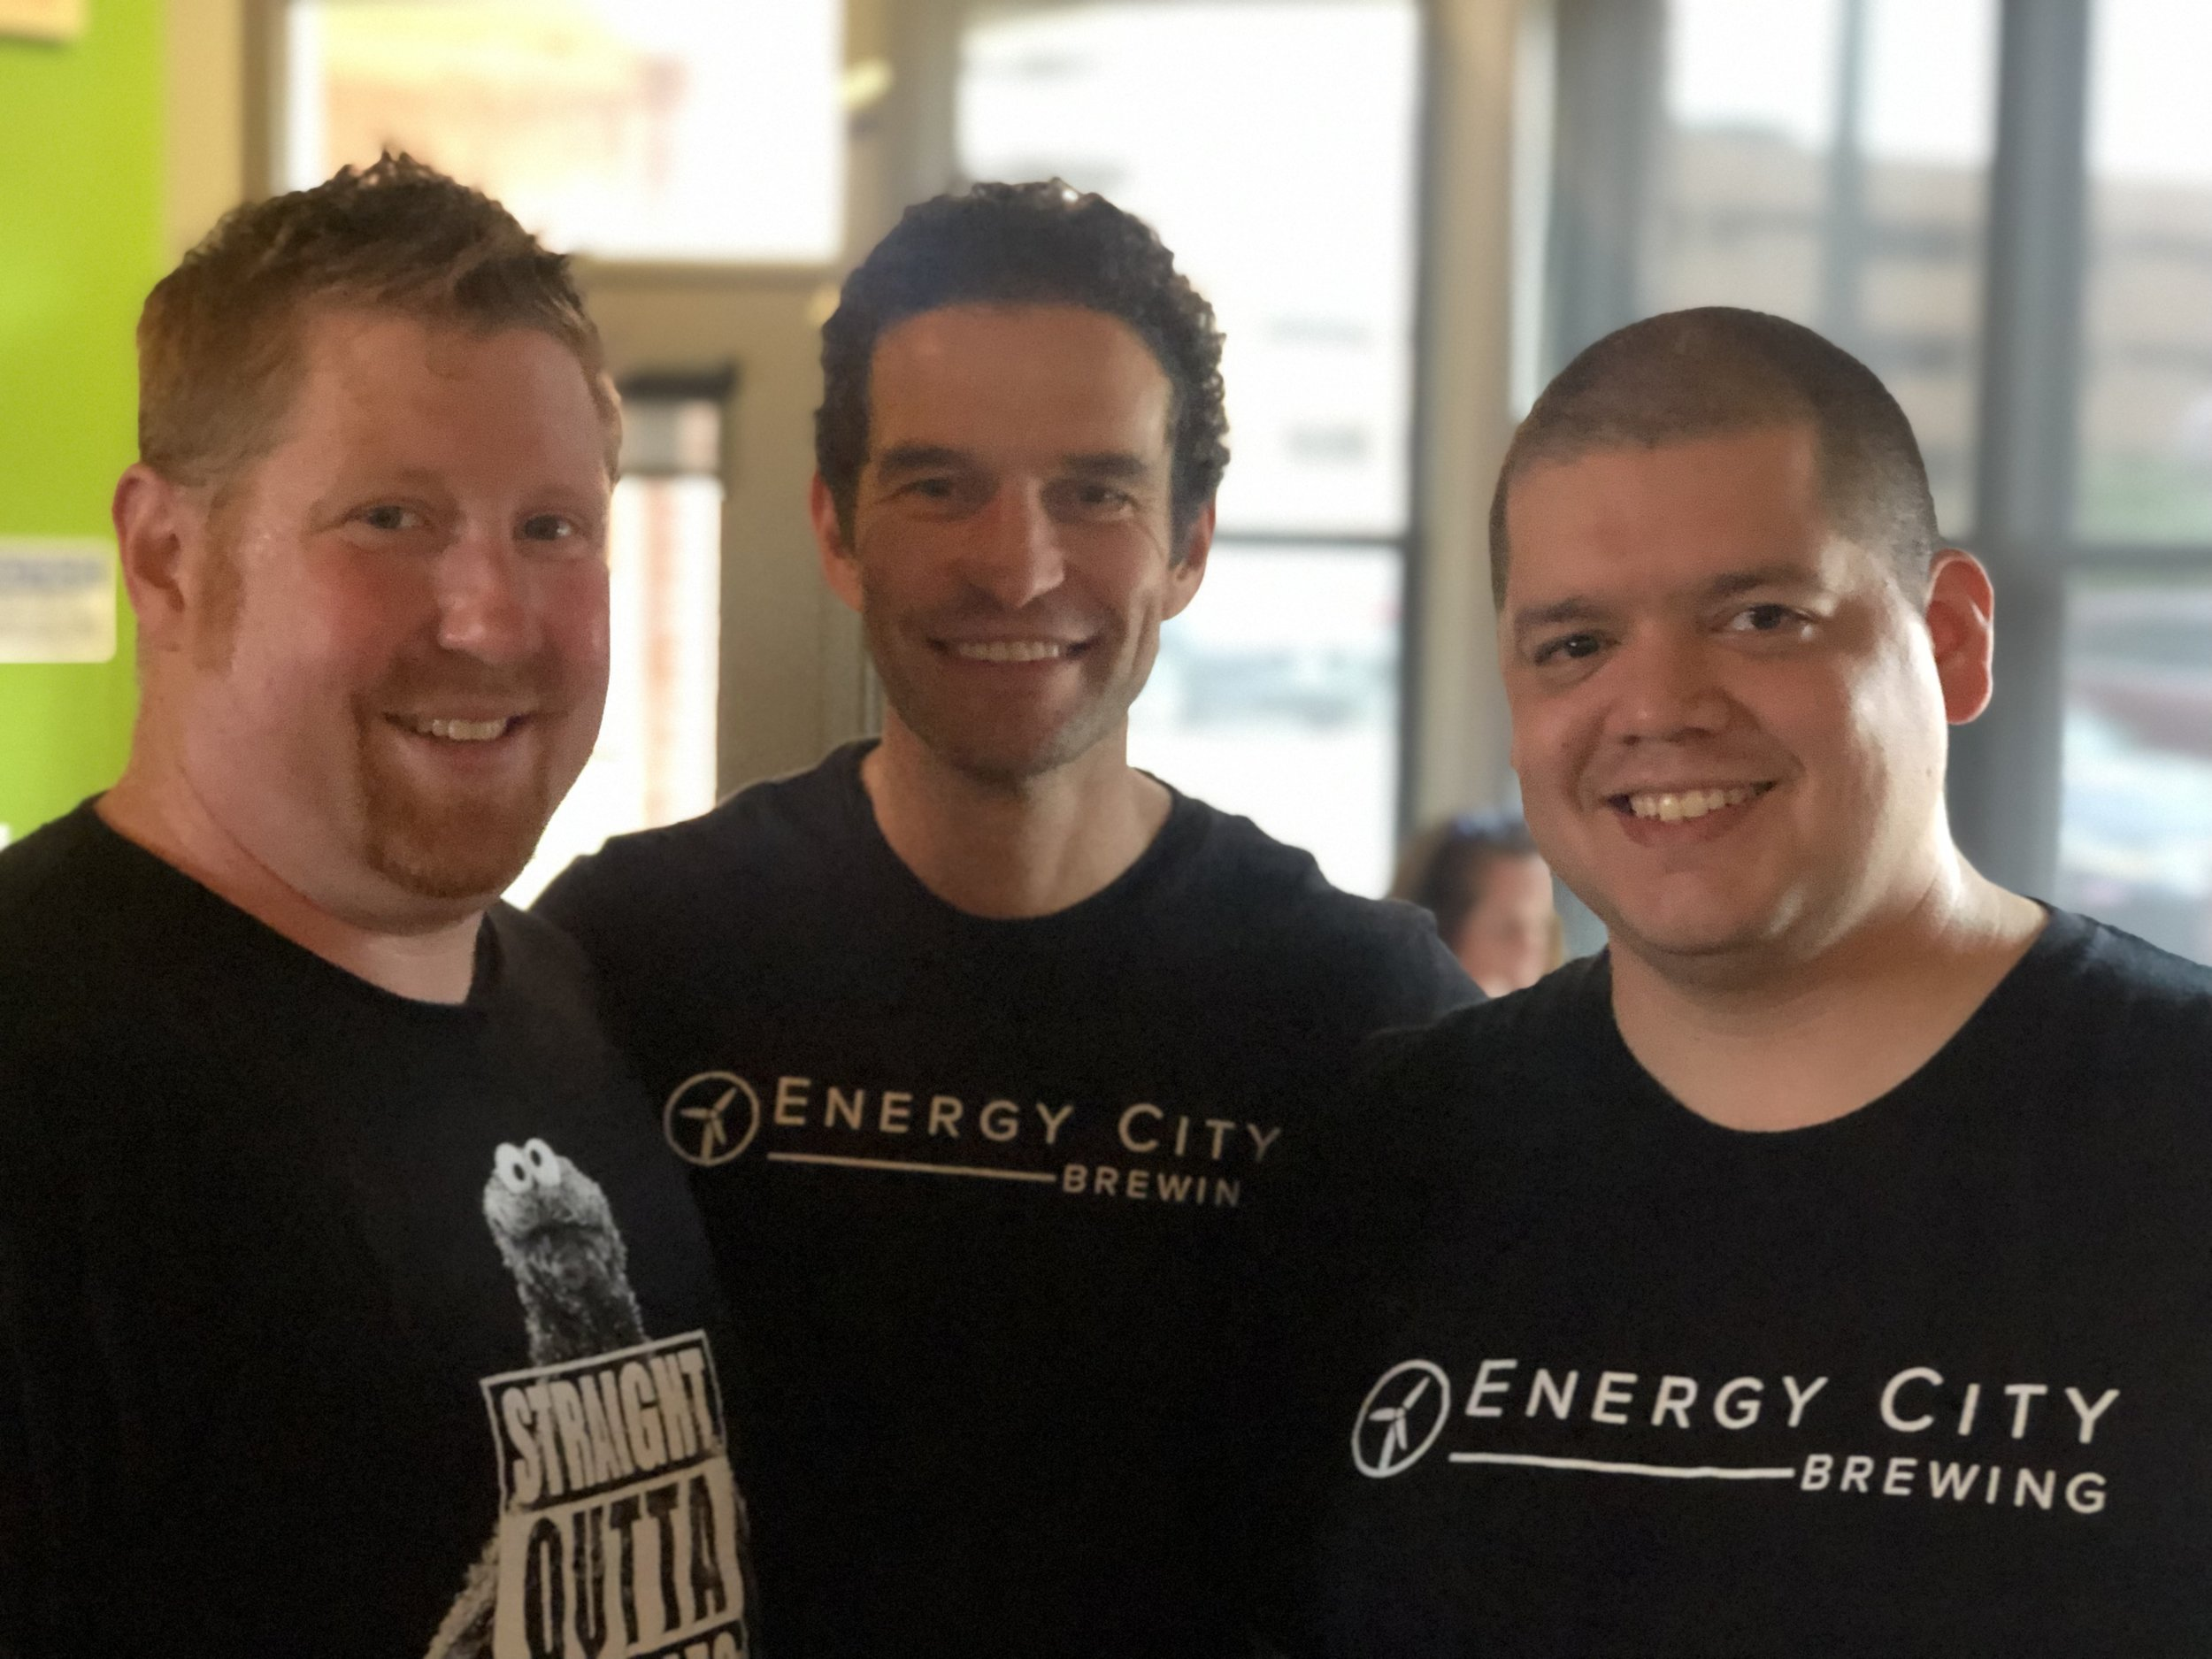 Dan Emerson, owner of Gillerson's (left). David Files, ECB Brewmaster (middle). Eric Diaz, ECB staff (right).